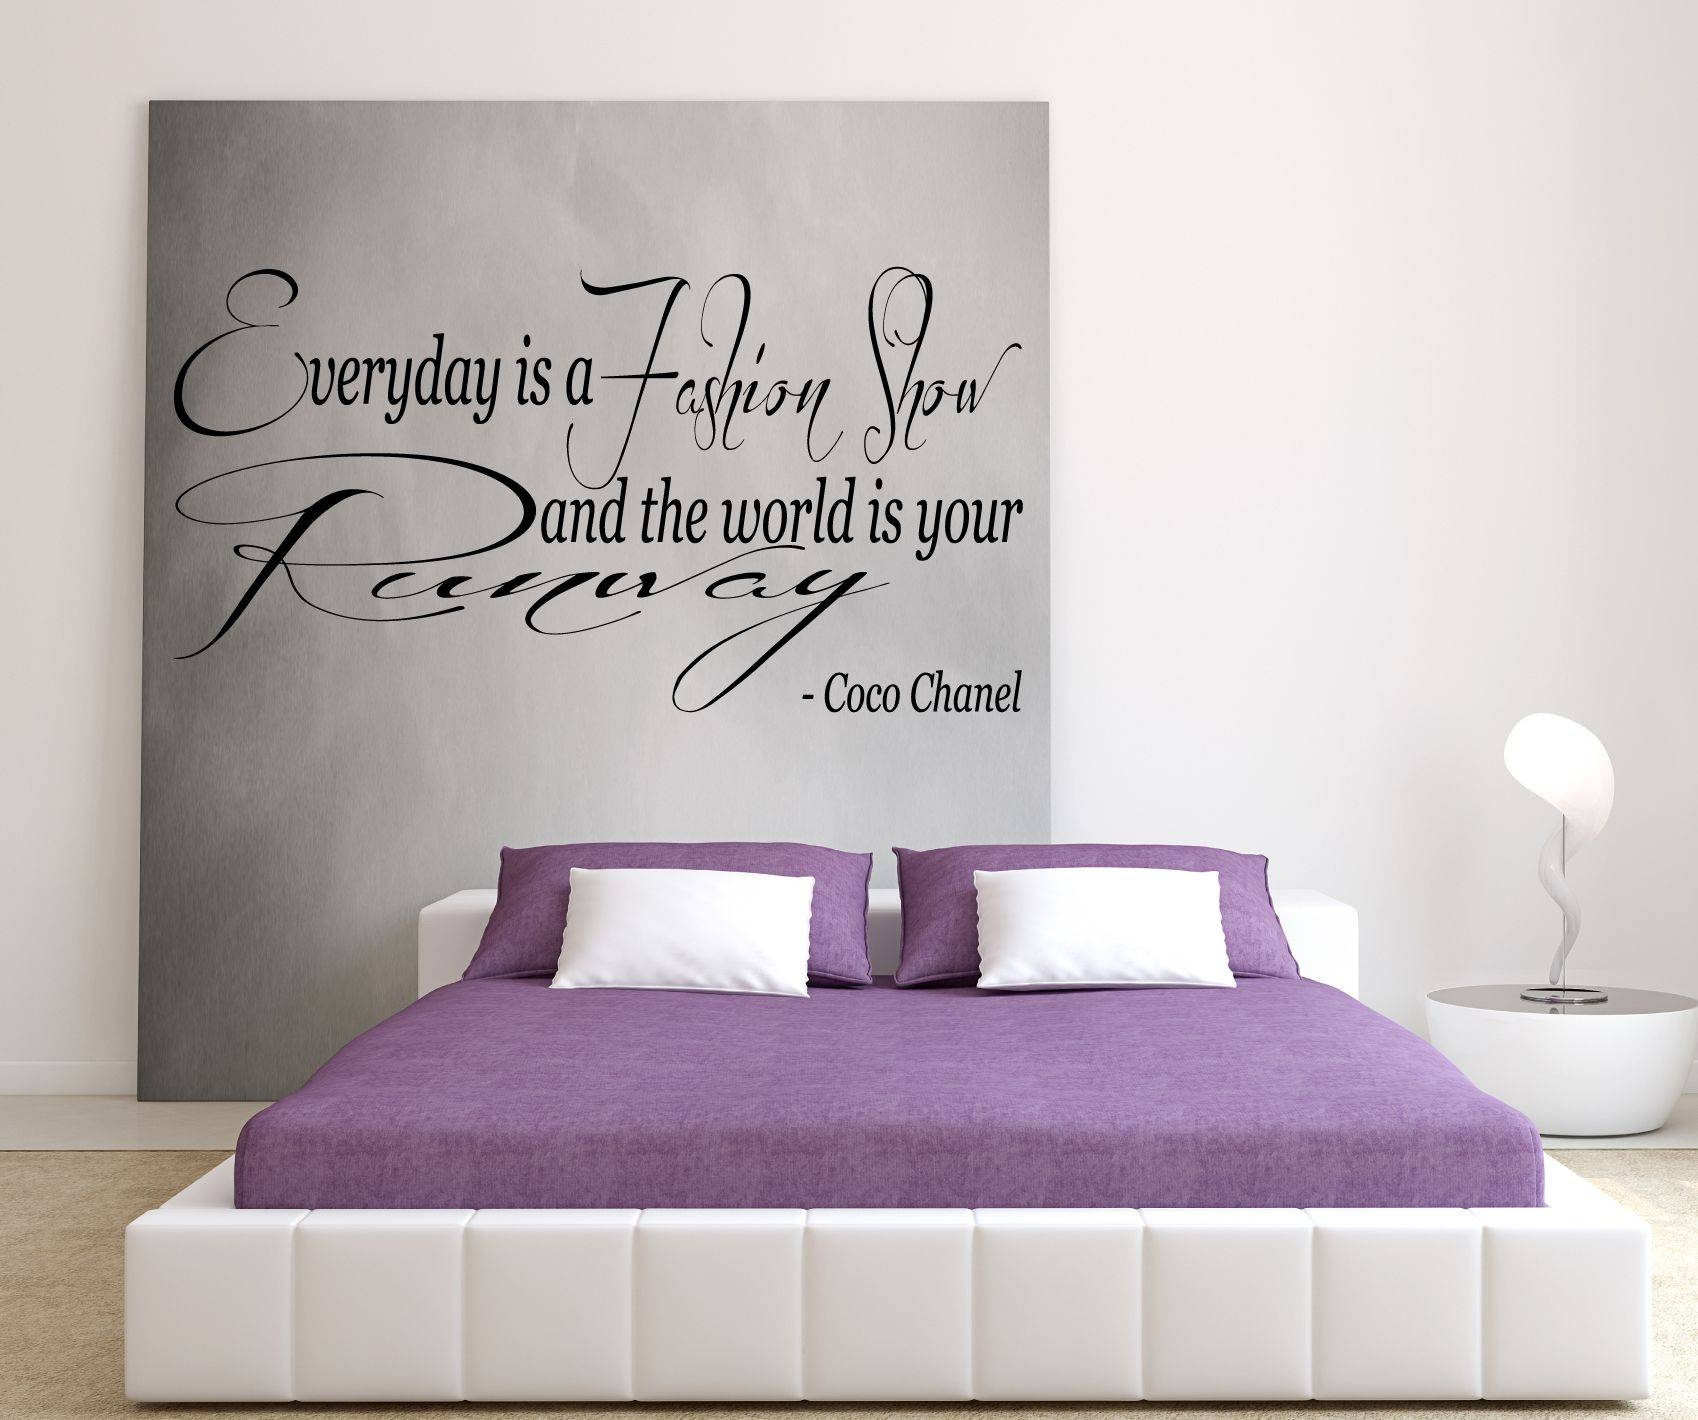 Coco Chanel – Everyday Is A Fashion Show And The World Is Your Within Most Up To Date Coco Chanel Wall Decals (View 5 of 25)